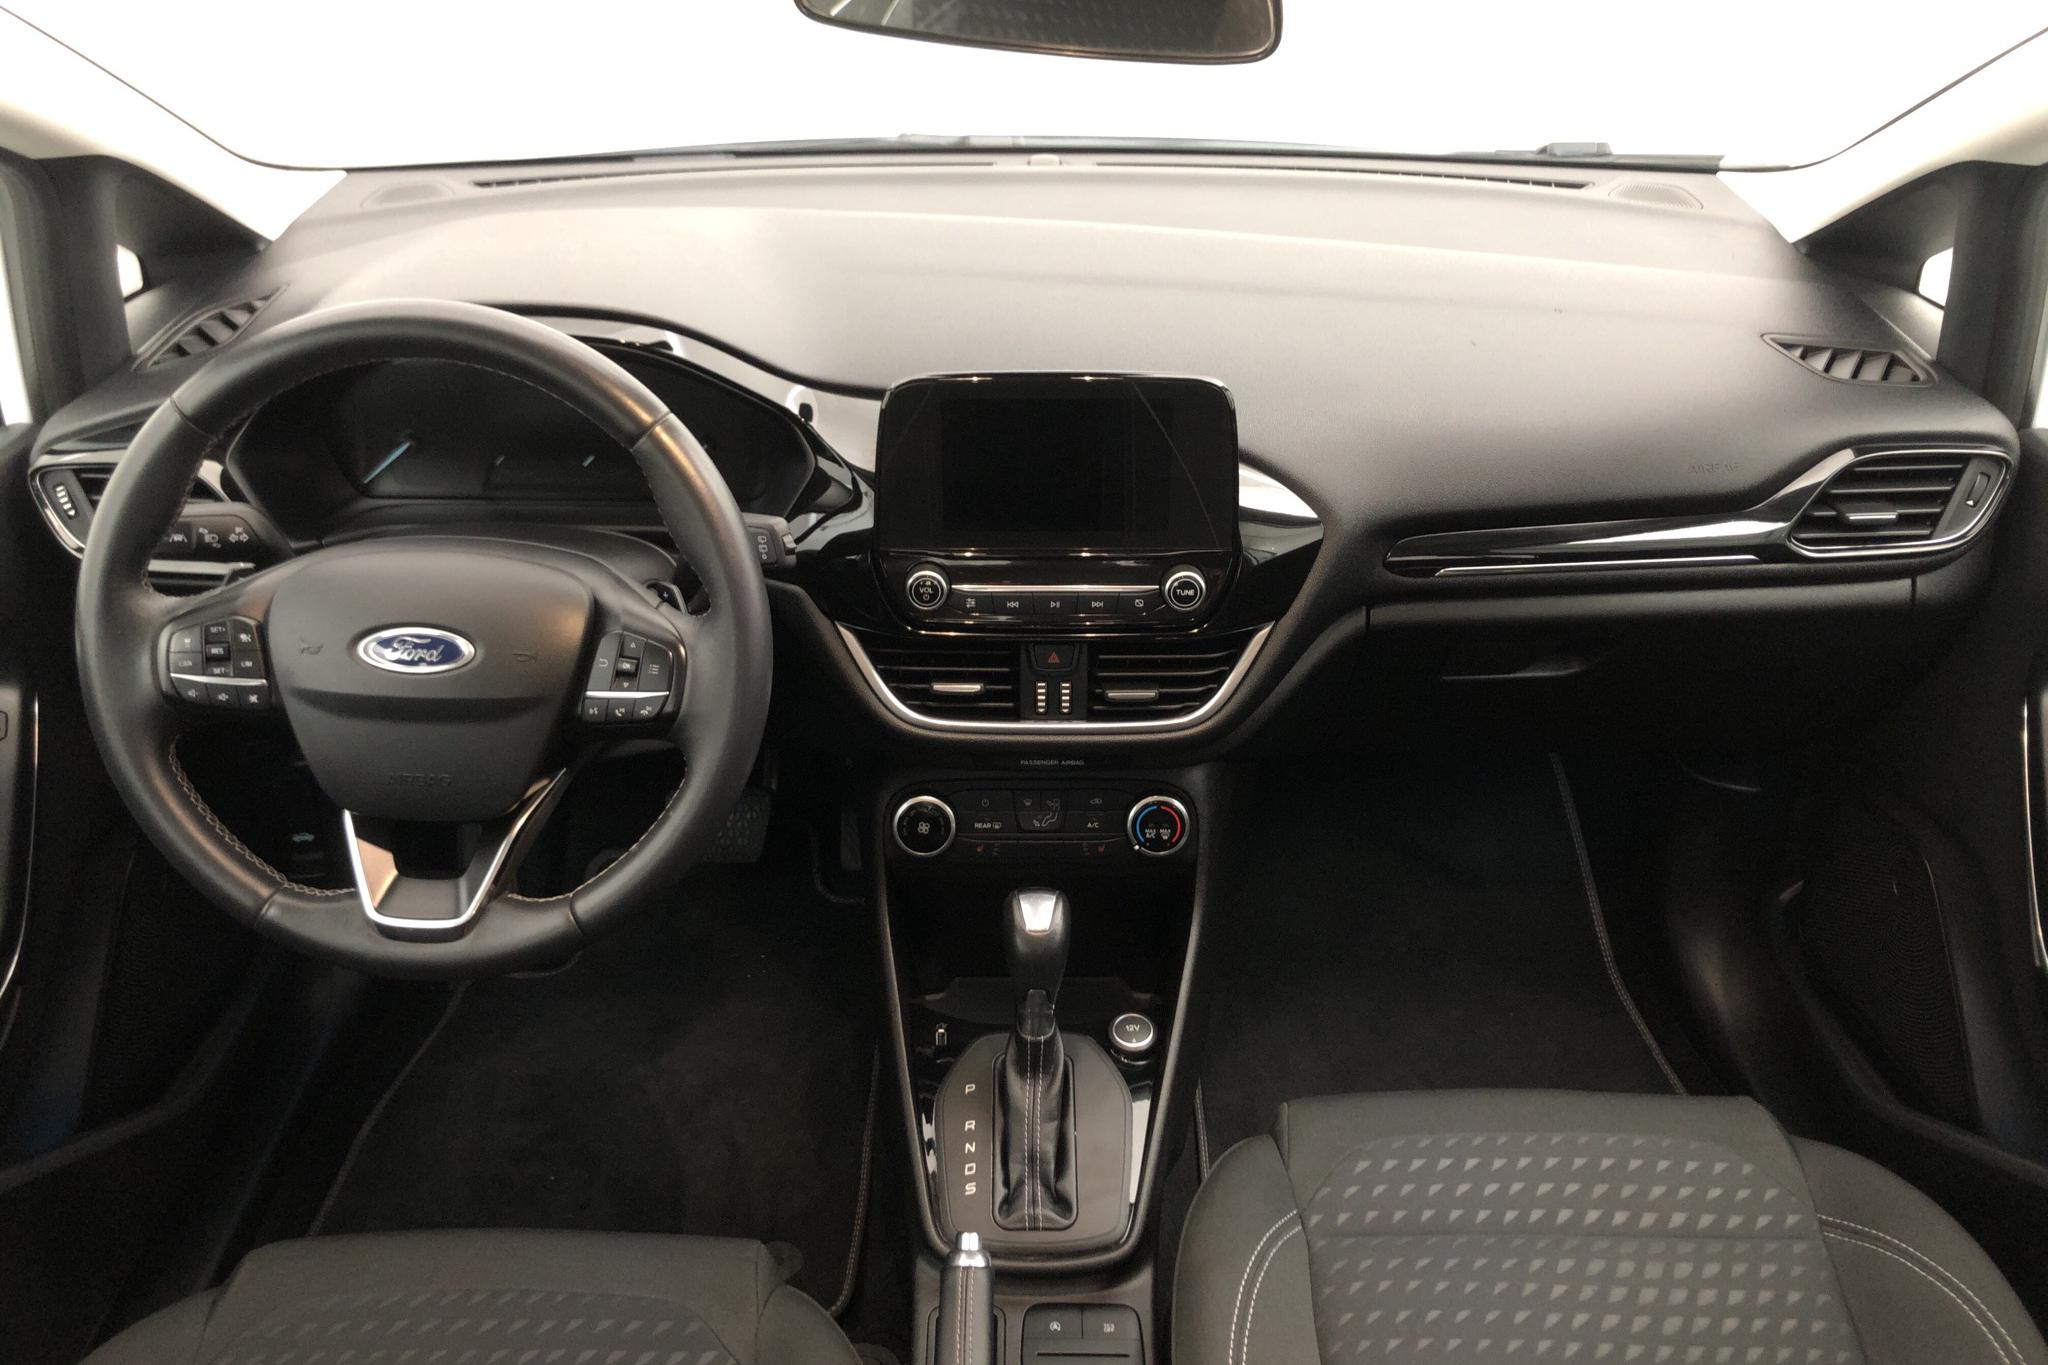 Ford Fiesta 1.0T EcoBoost 5dr (100hk) - 48 750 km - Automatic - white - 2018